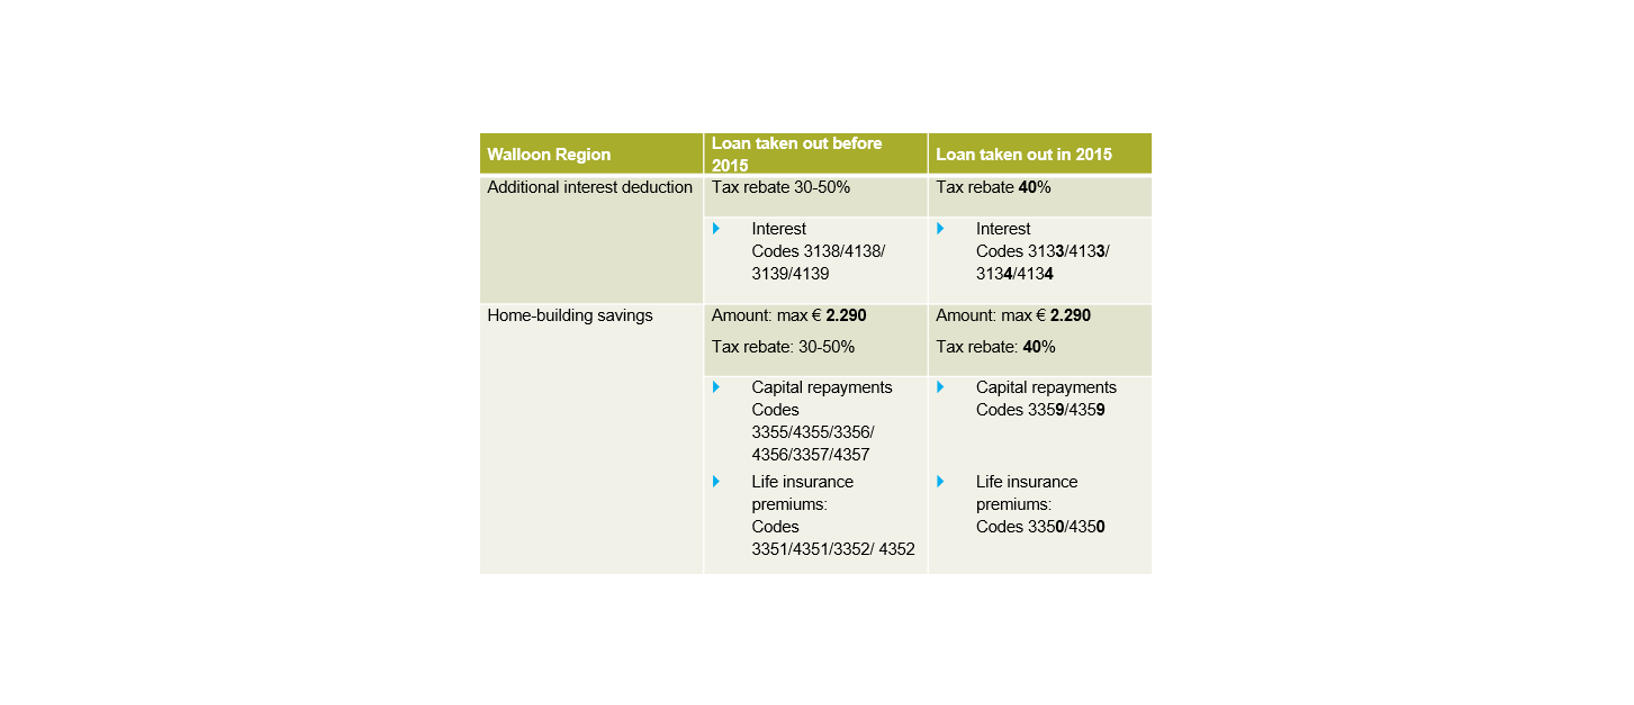 Walloon region Home-building savings and additional interest deduction